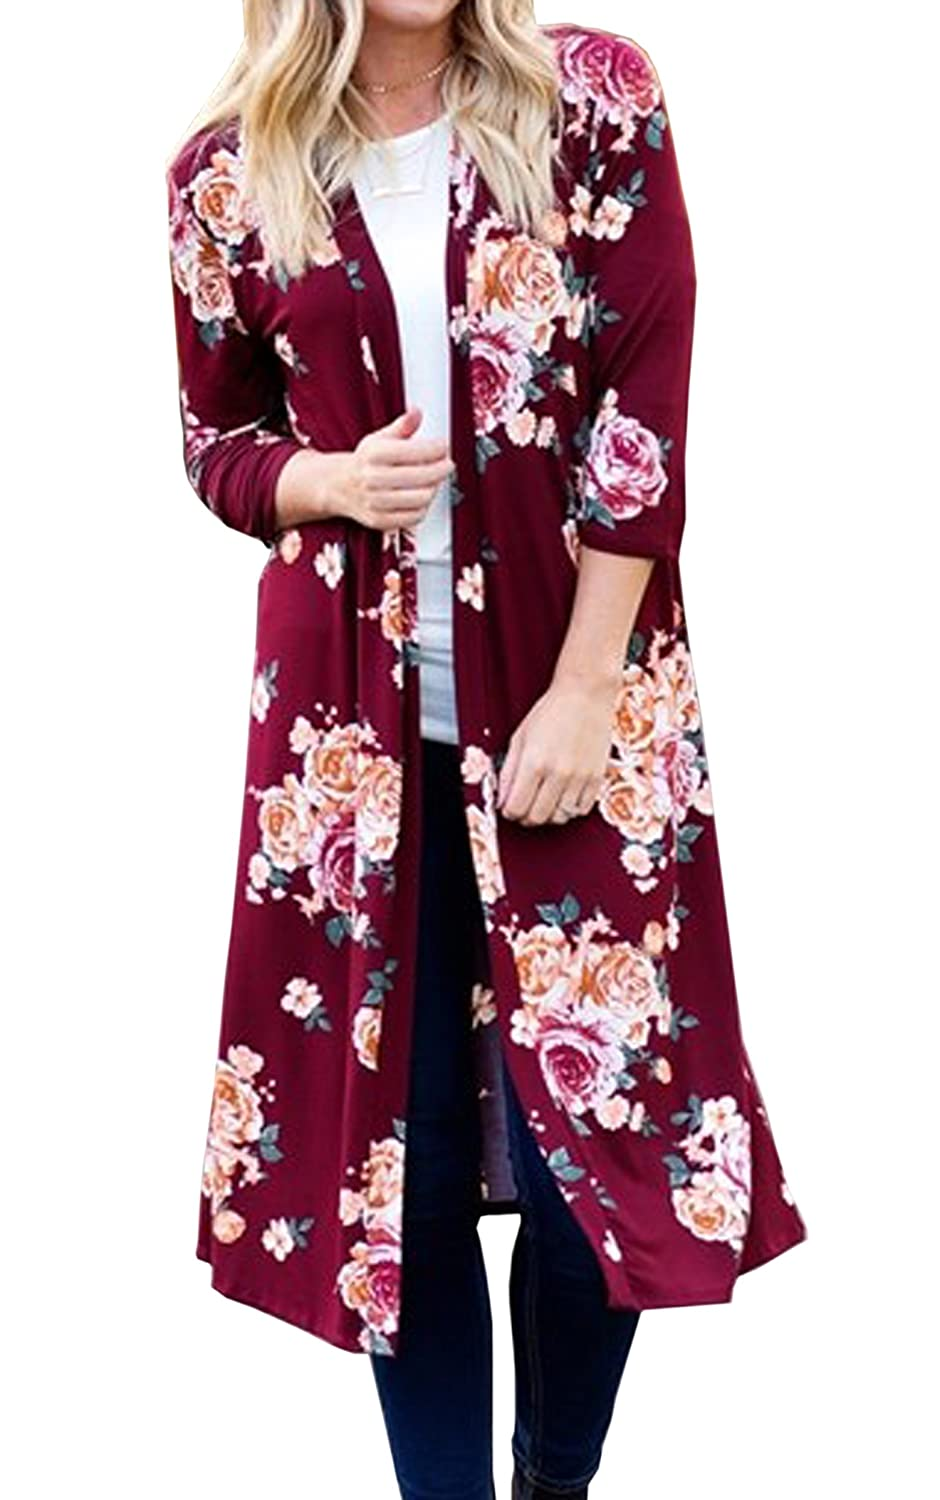 Hibluco Women's Casual 3/4 Sleeve Floral Printed Open Long Cardigan Jacket Outwear